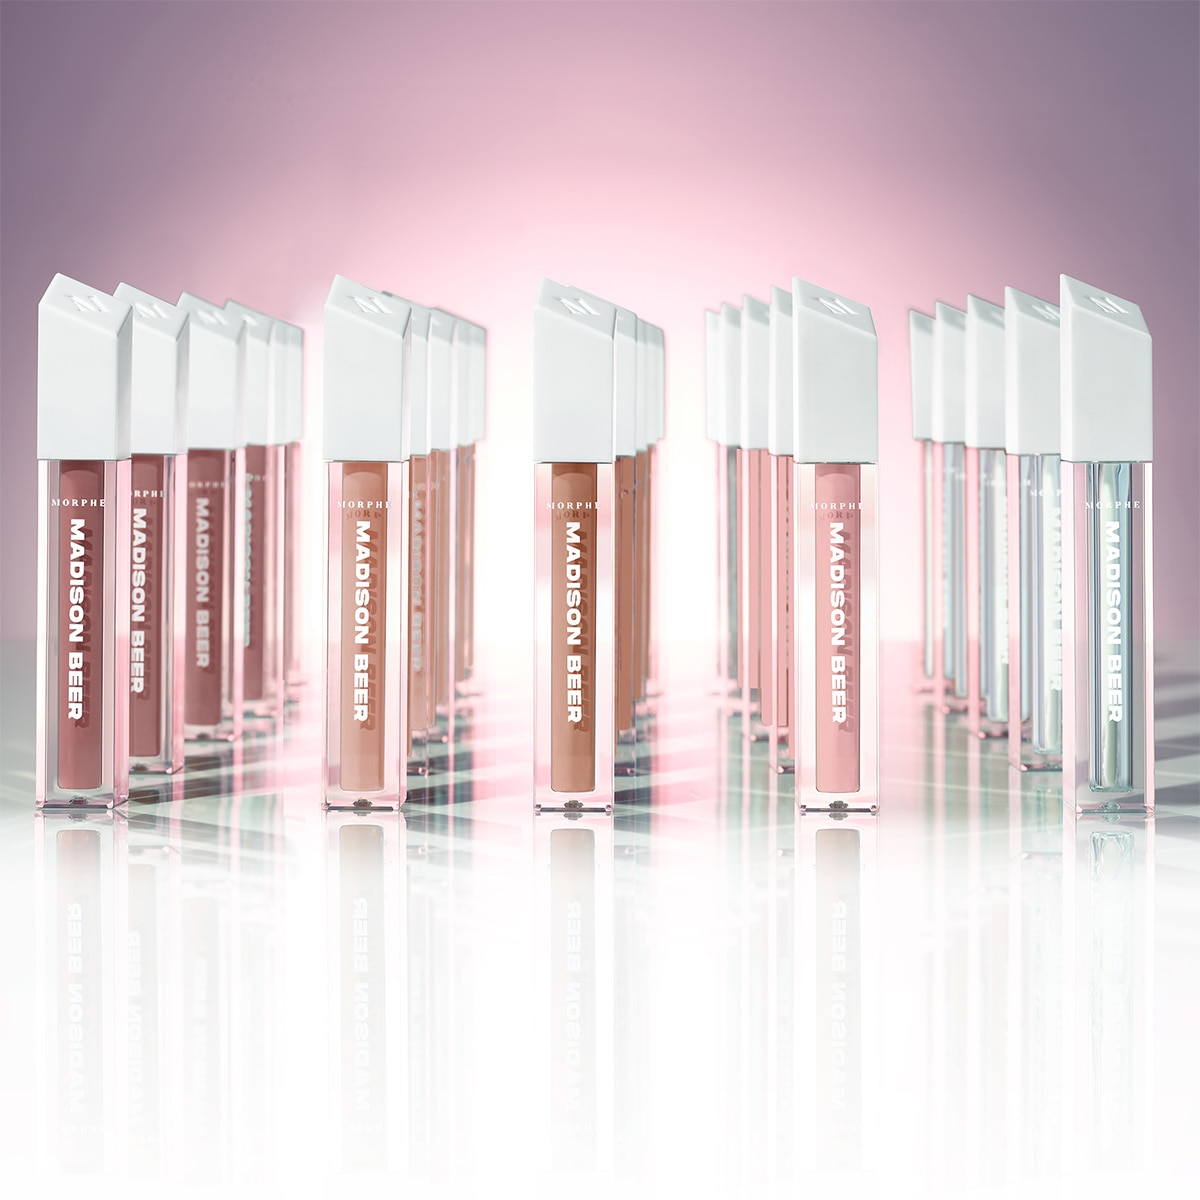 MADISON BEER LIP GLOSS (BRILLO DE LABIOS)